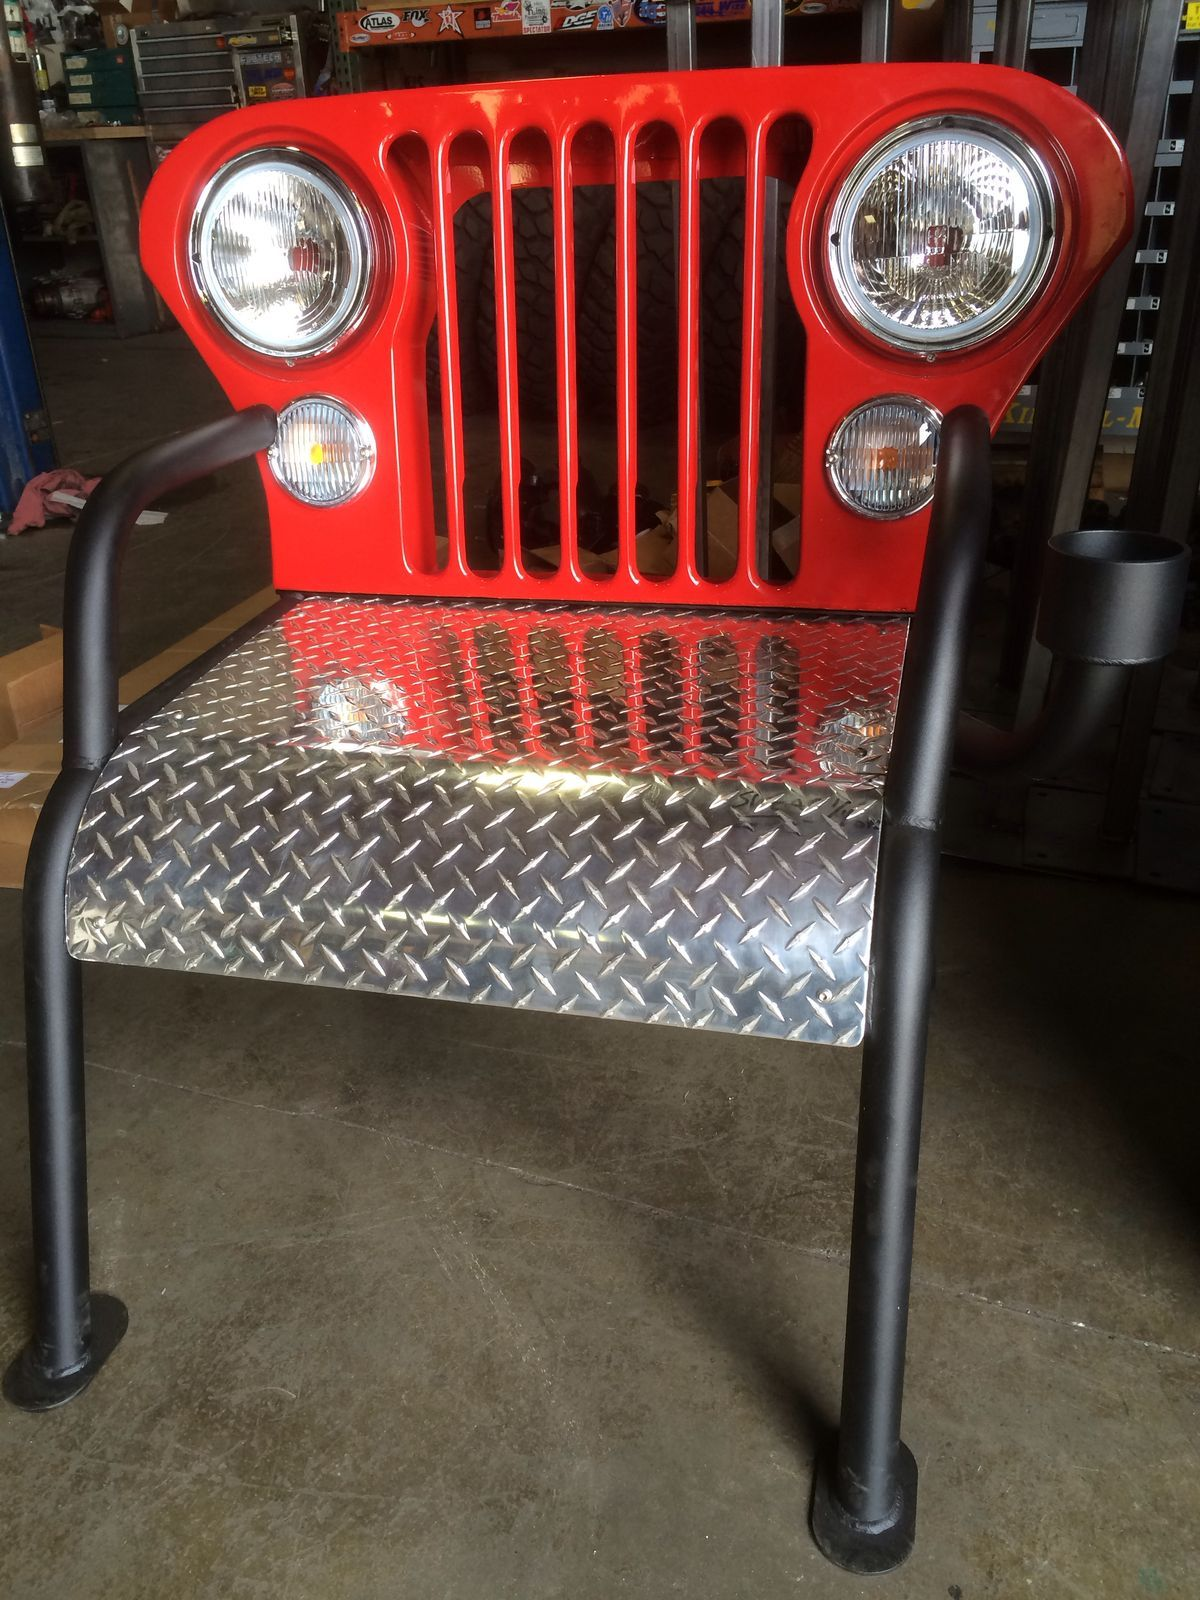 stunning home welding projects plans. Jeeps have been a huge part of my life  from first rig to meeting hubby driving matching TJ s down road As Jeep and welding woman 62484bb302d3ab55a17620cac11e6f9a jpg 1 200 600 pixels Welding